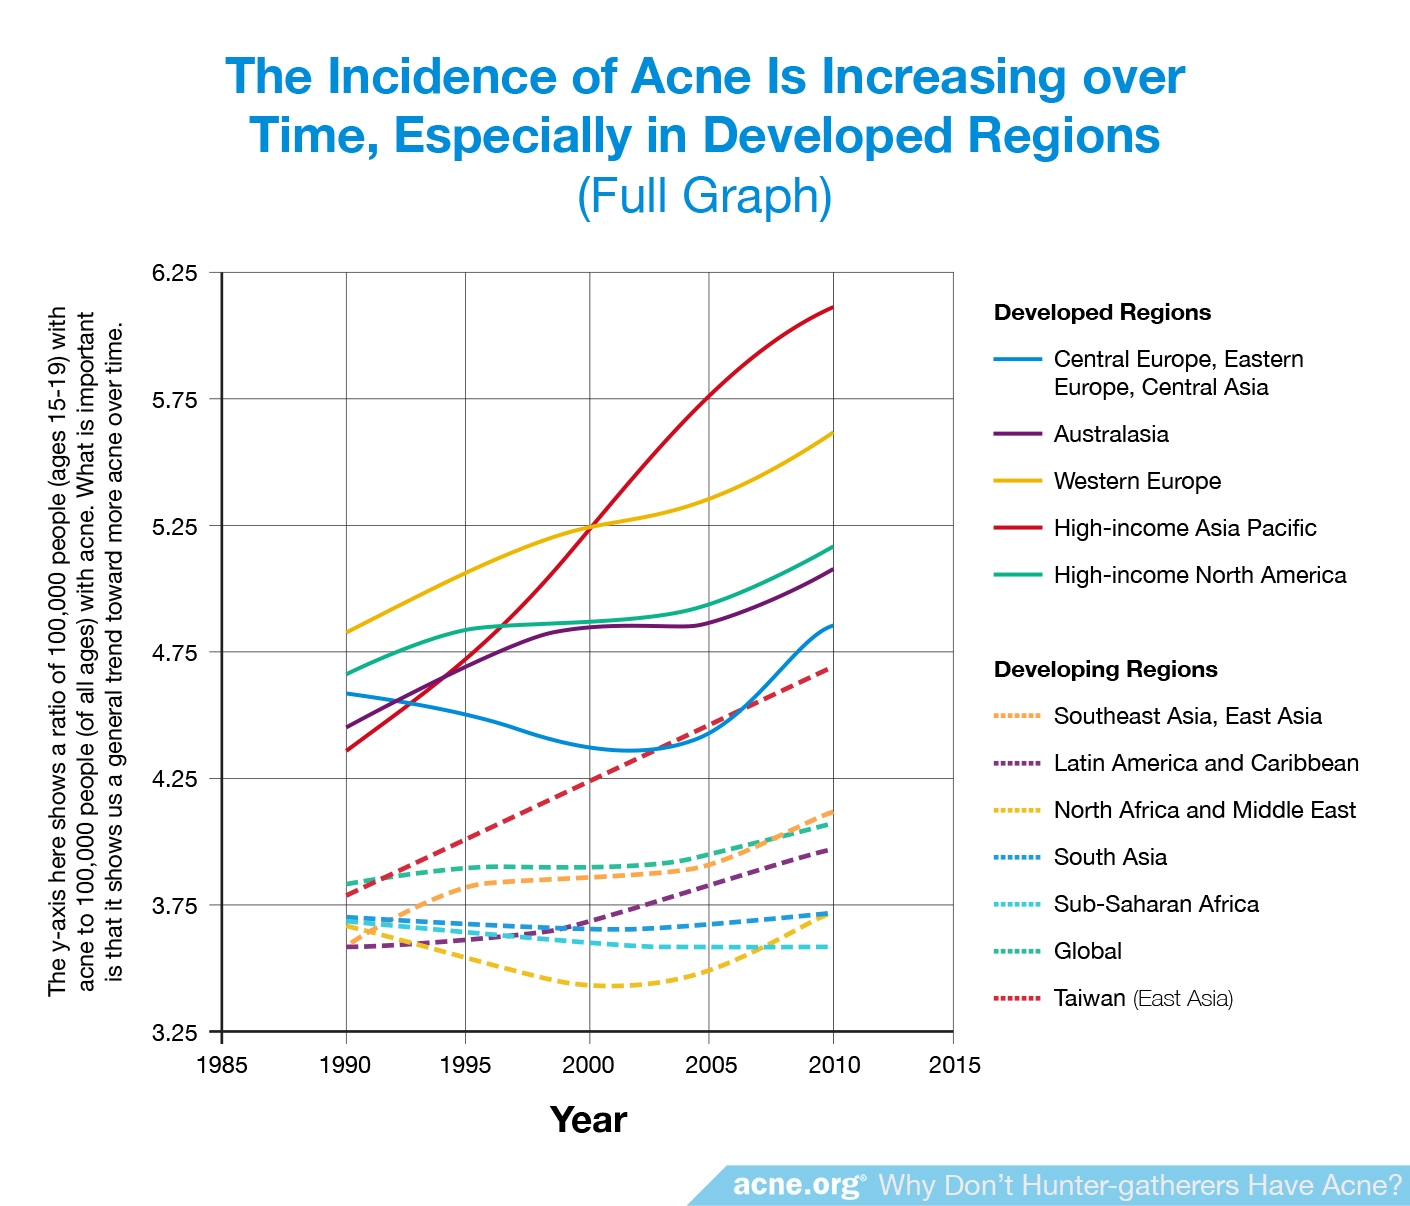 The Incidence of Acne Is Increasing Over Time, Especially in Developed Regions